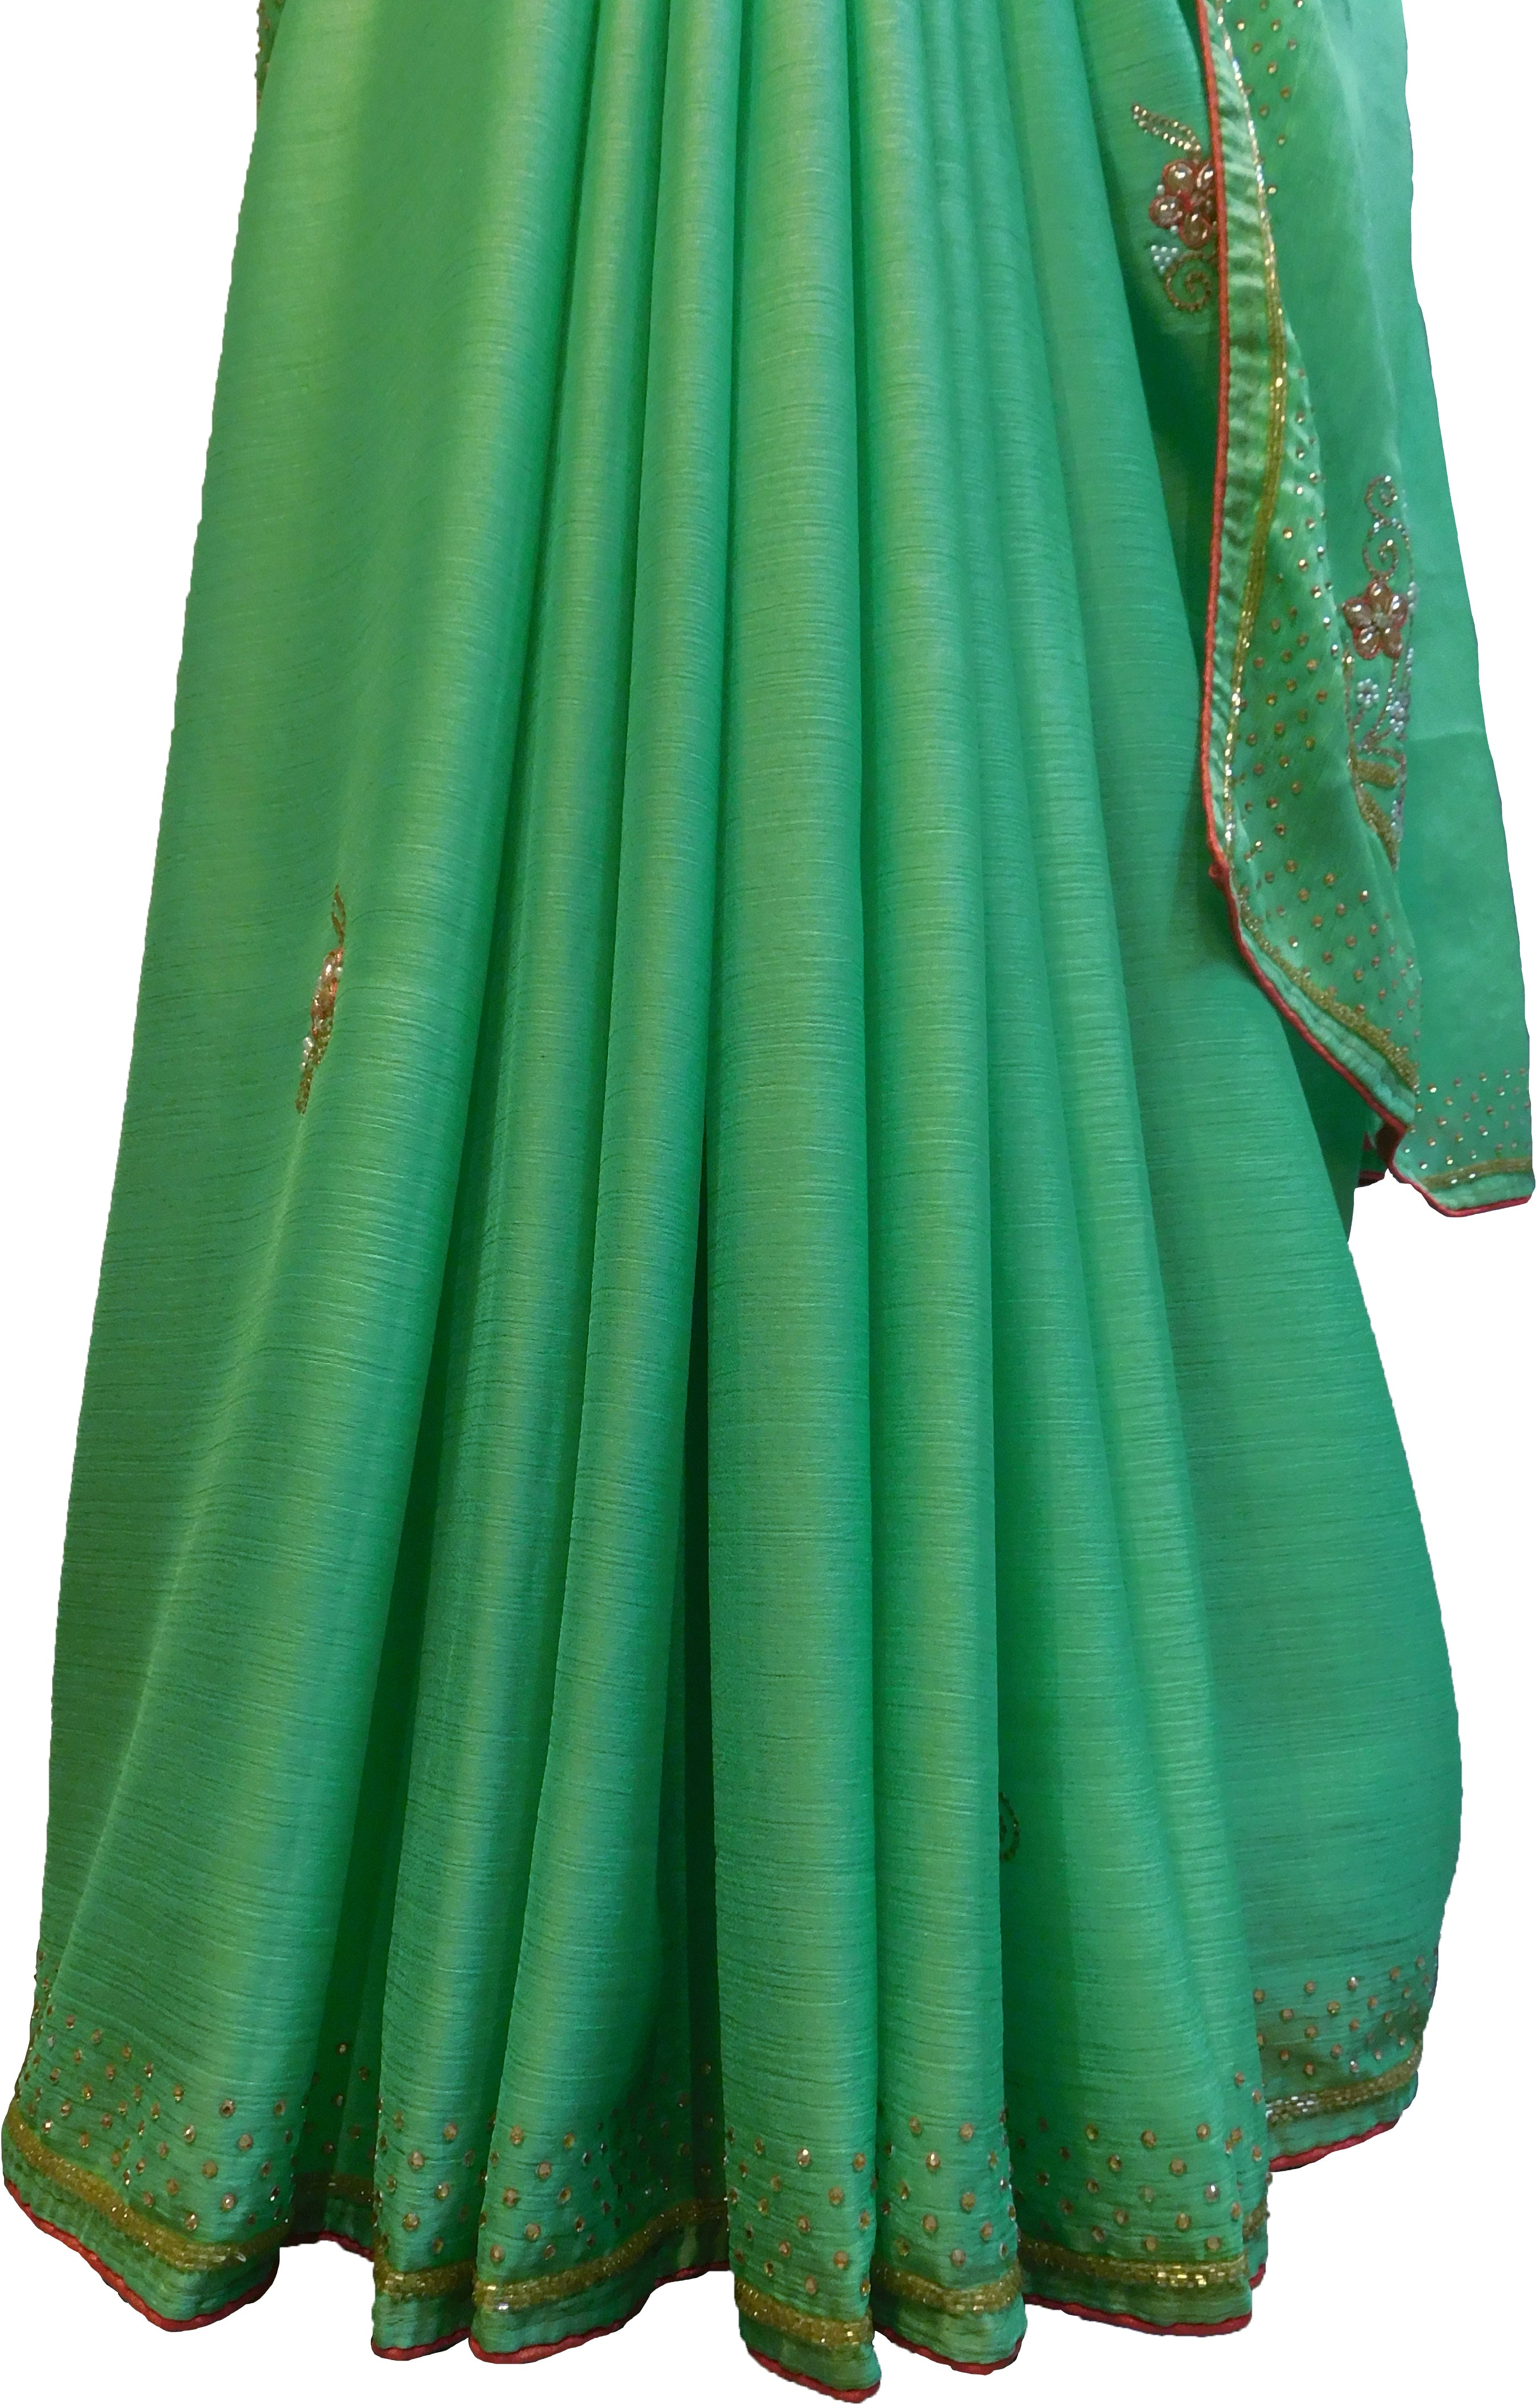 SMSAREE Green Designer Wedding Partywear Georgette Stone Beads Zari Thread & Bullion Hand Embroidery Work Bridal Saree Sari With Blouse Piece F217